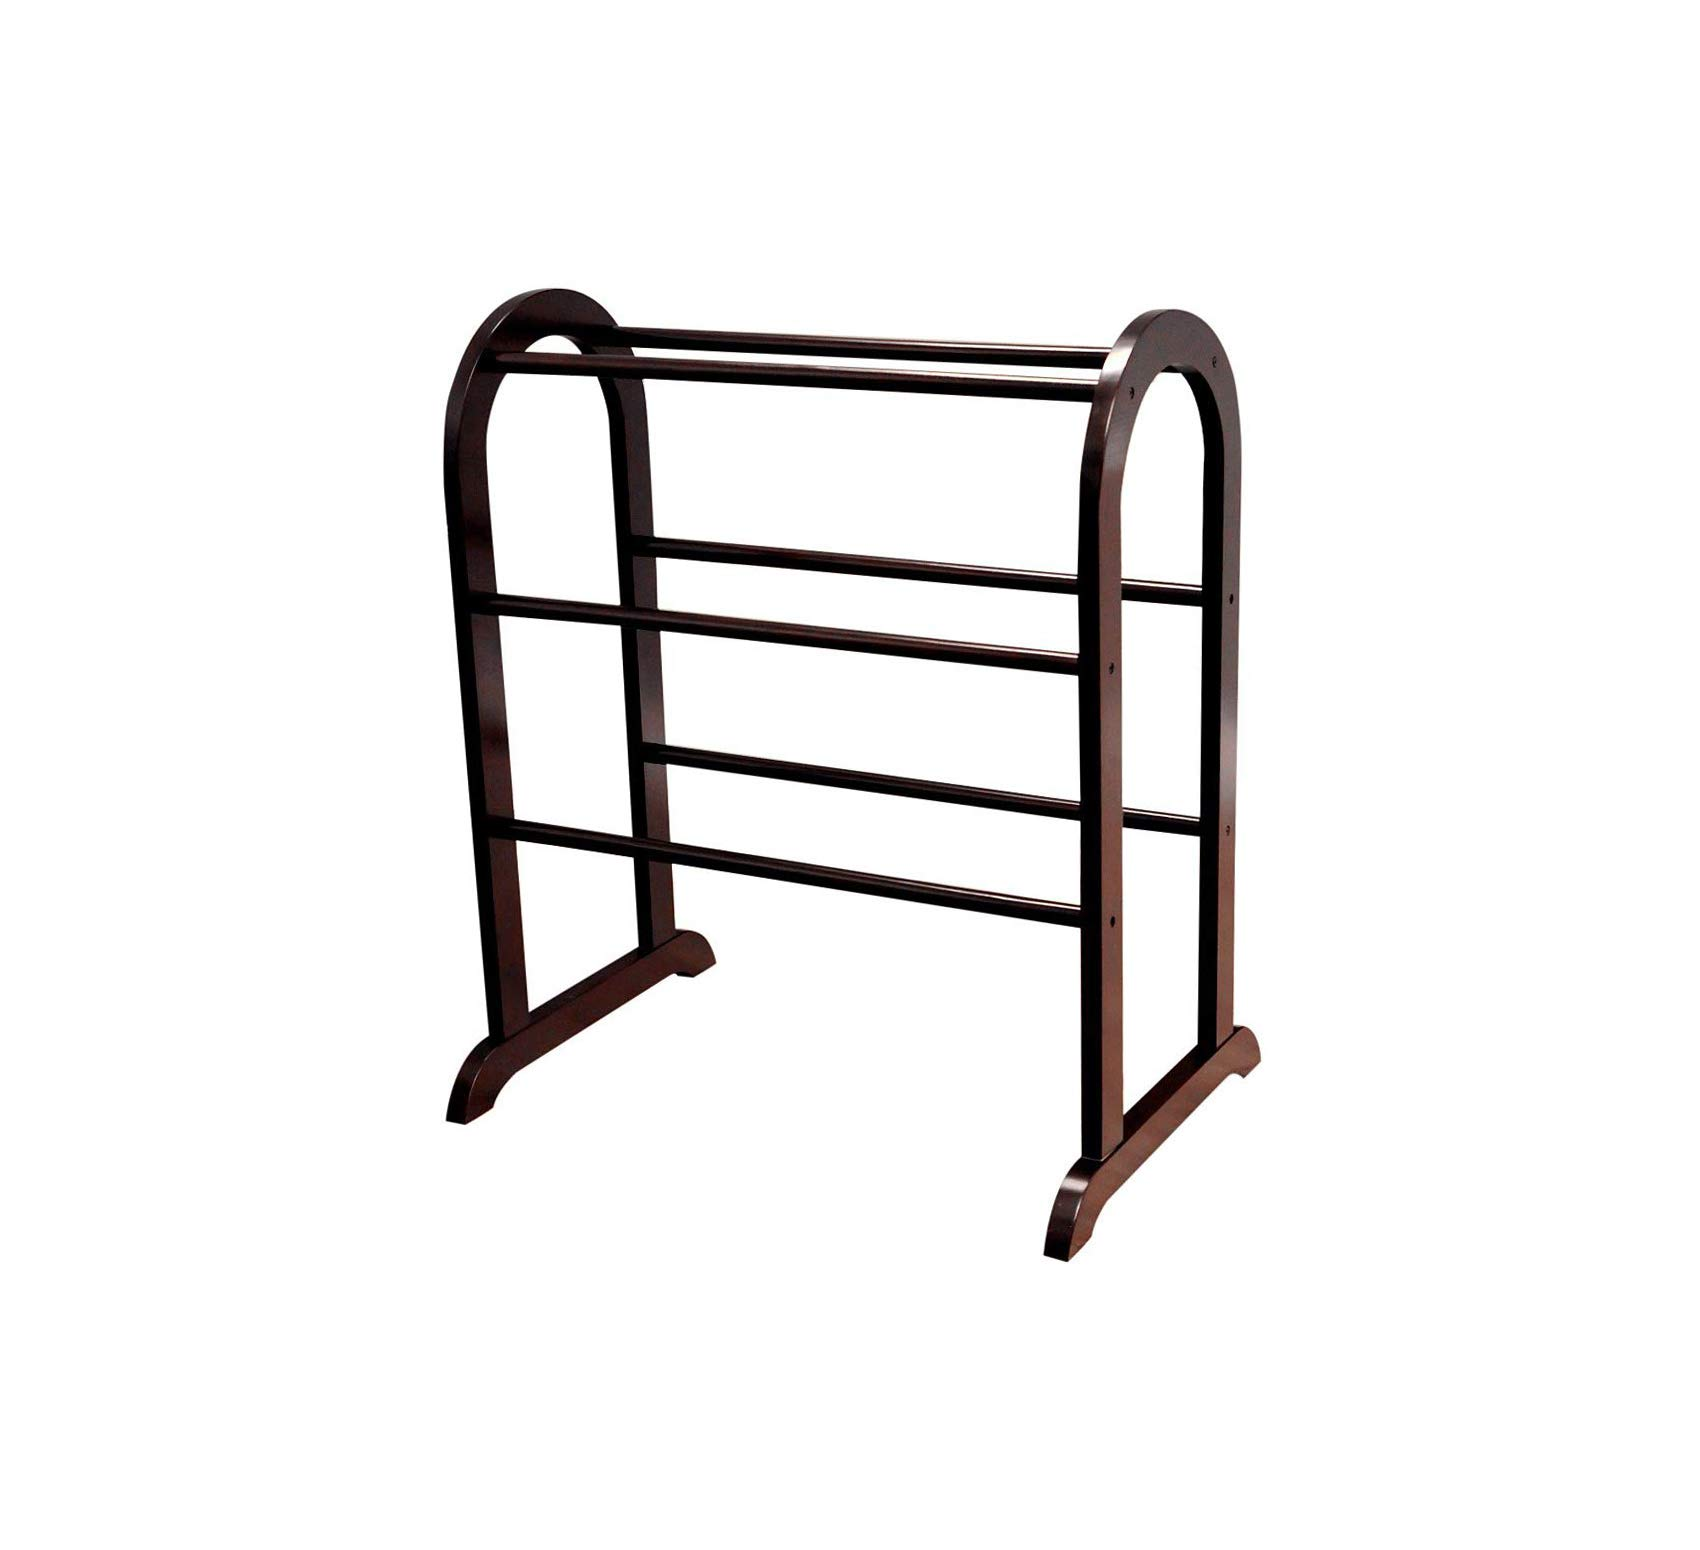 Wood & Style Furniture Quilt Rack Home Office Commerial Heavy Duty Strong Décor by Wood & Style